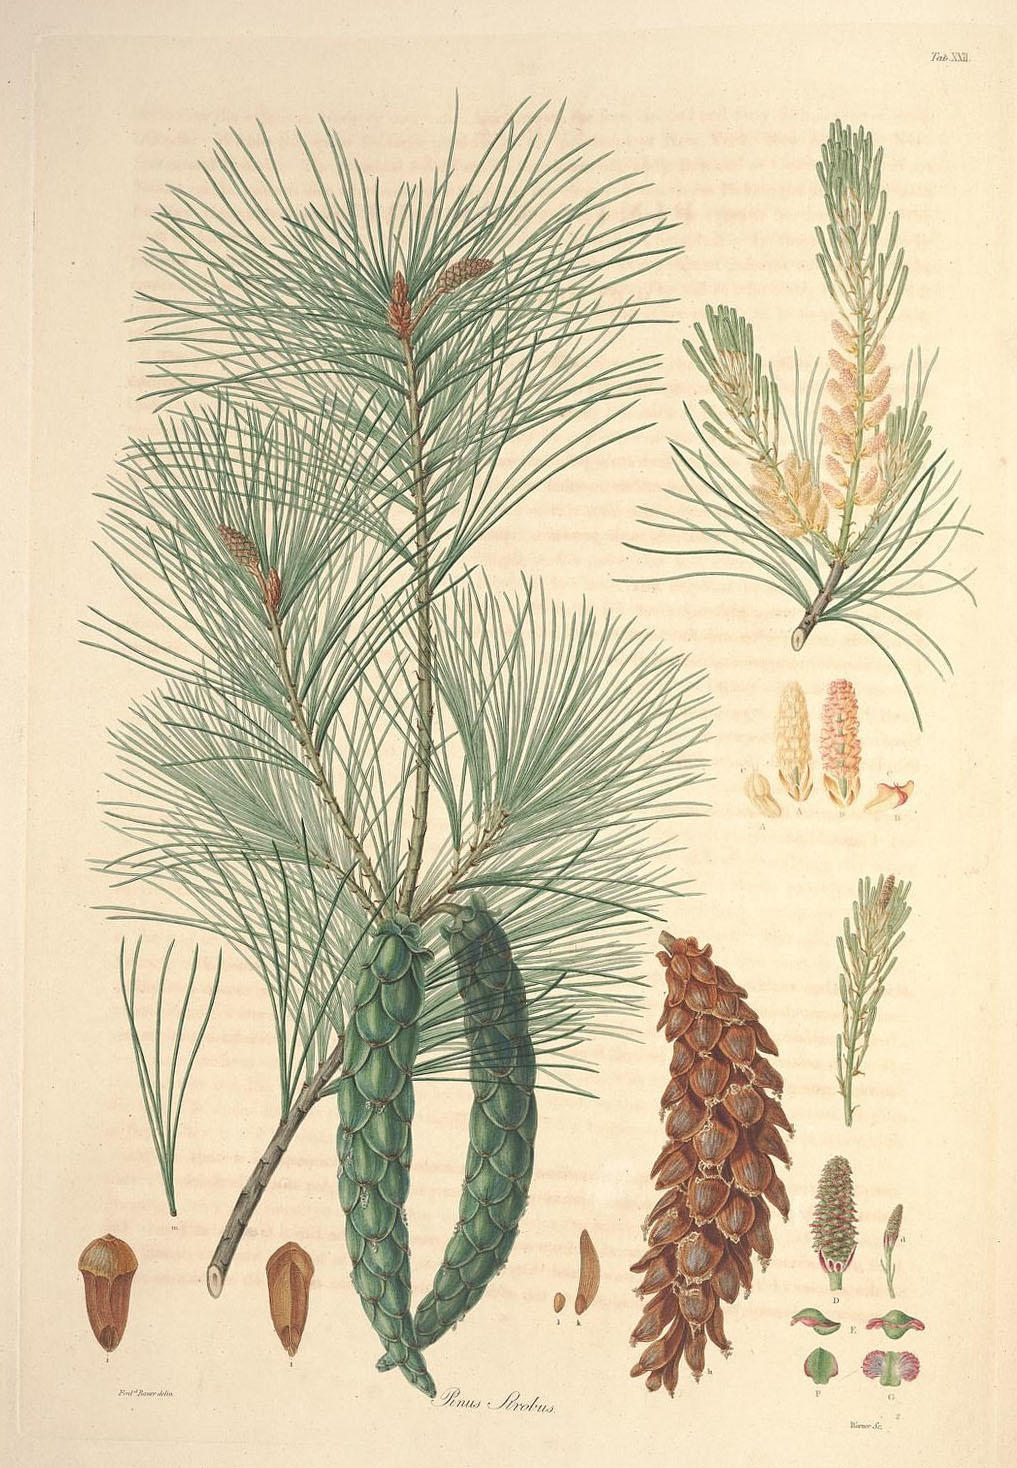 An illustration of the leaves and pine needles of the White Pine (Pinus strobus).